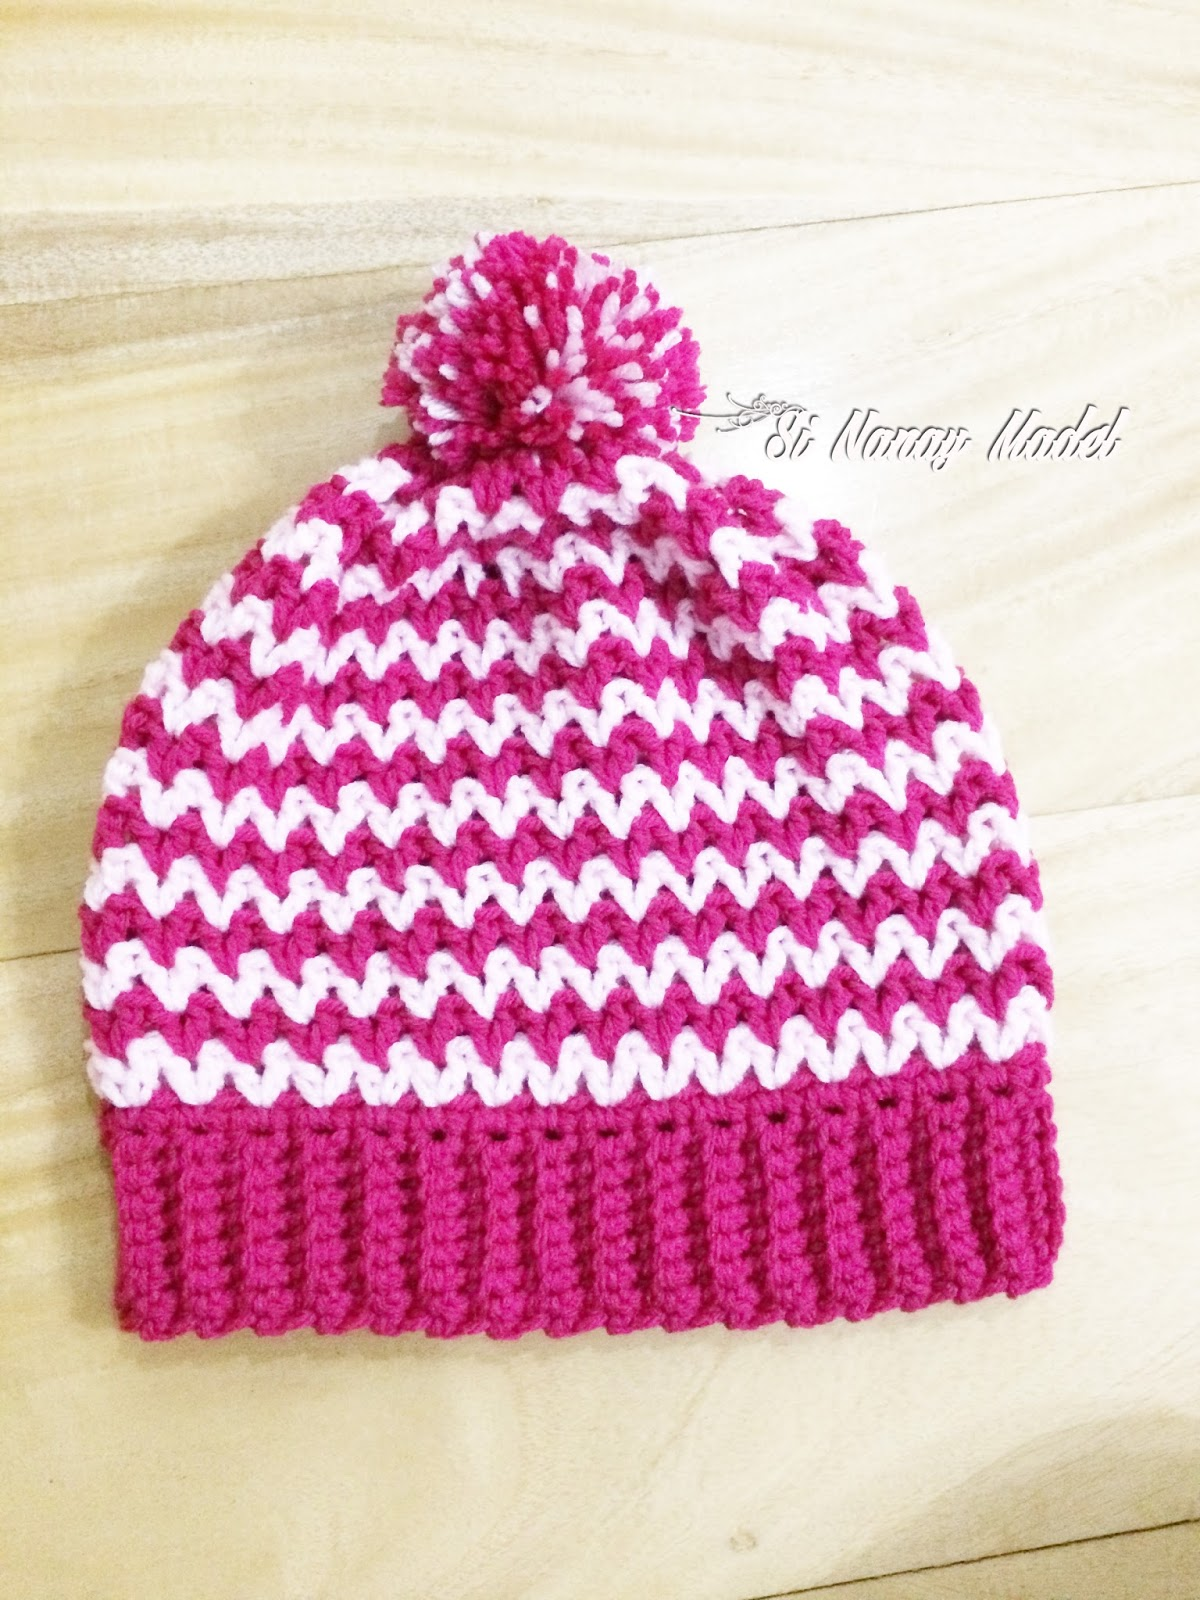 Different Knitting Stitches For Hats : Si Nanay Madel: Easy V-Stitch Hat